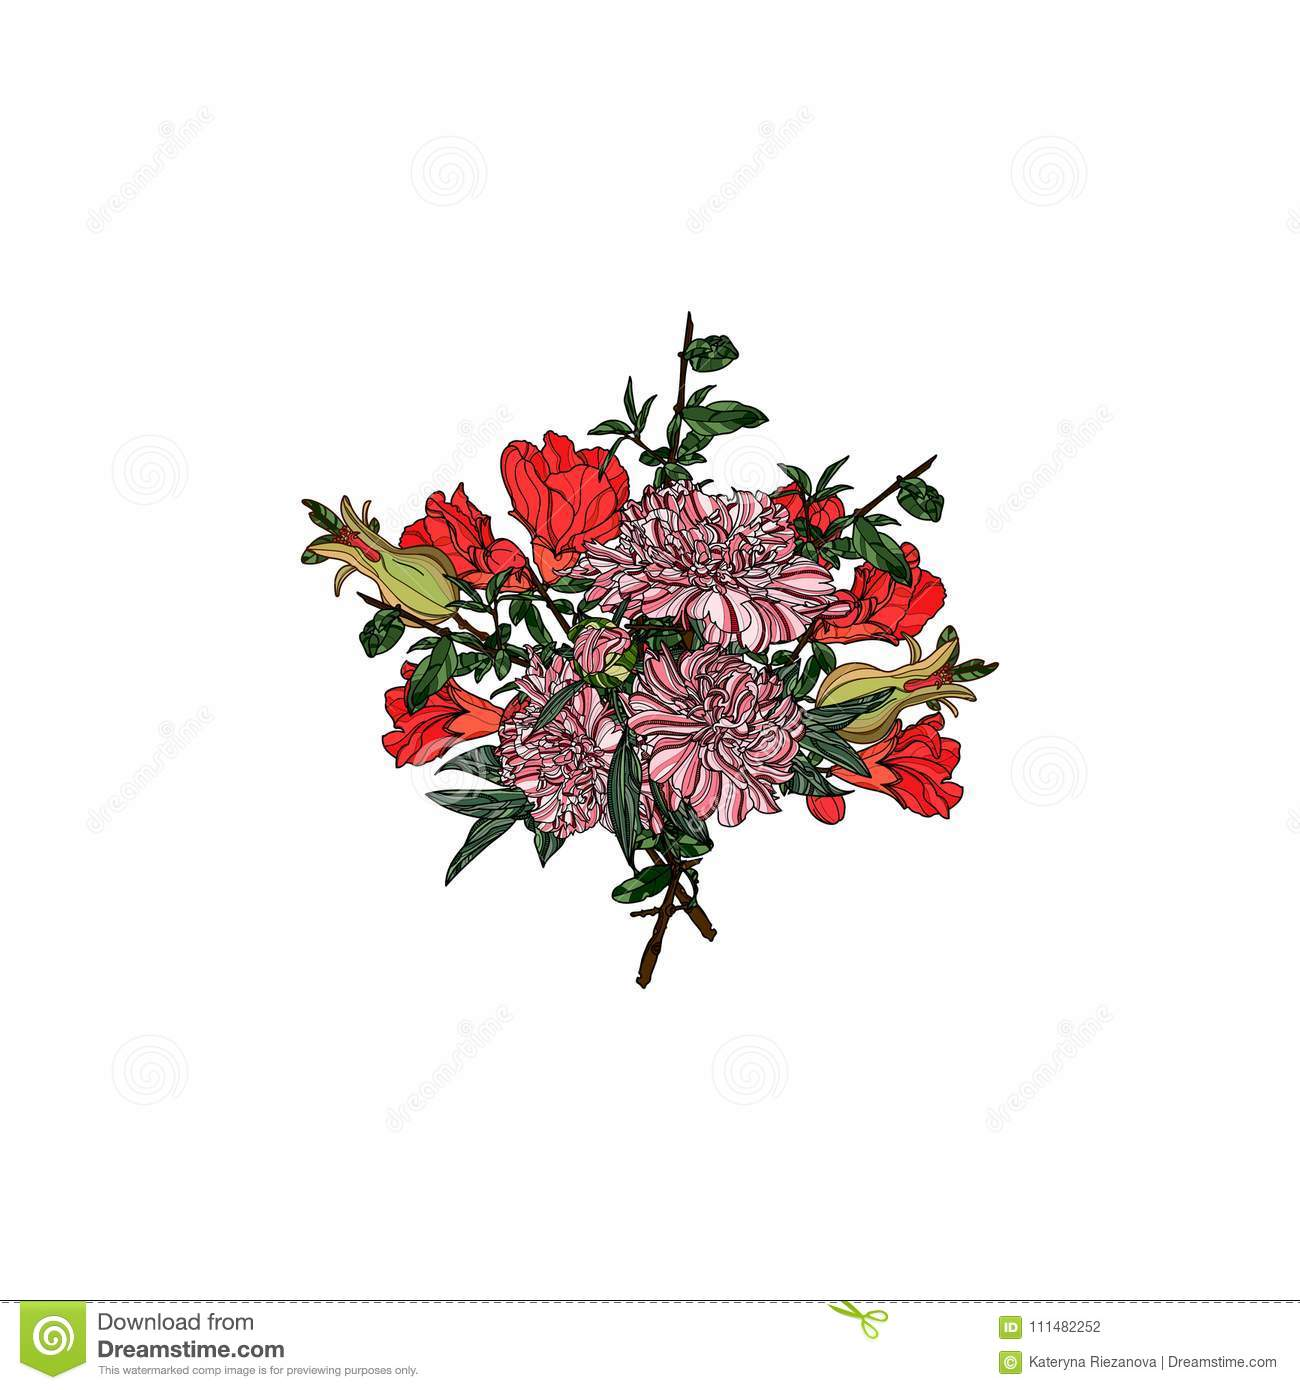 Bouquet of peony and pomegranate flowers.